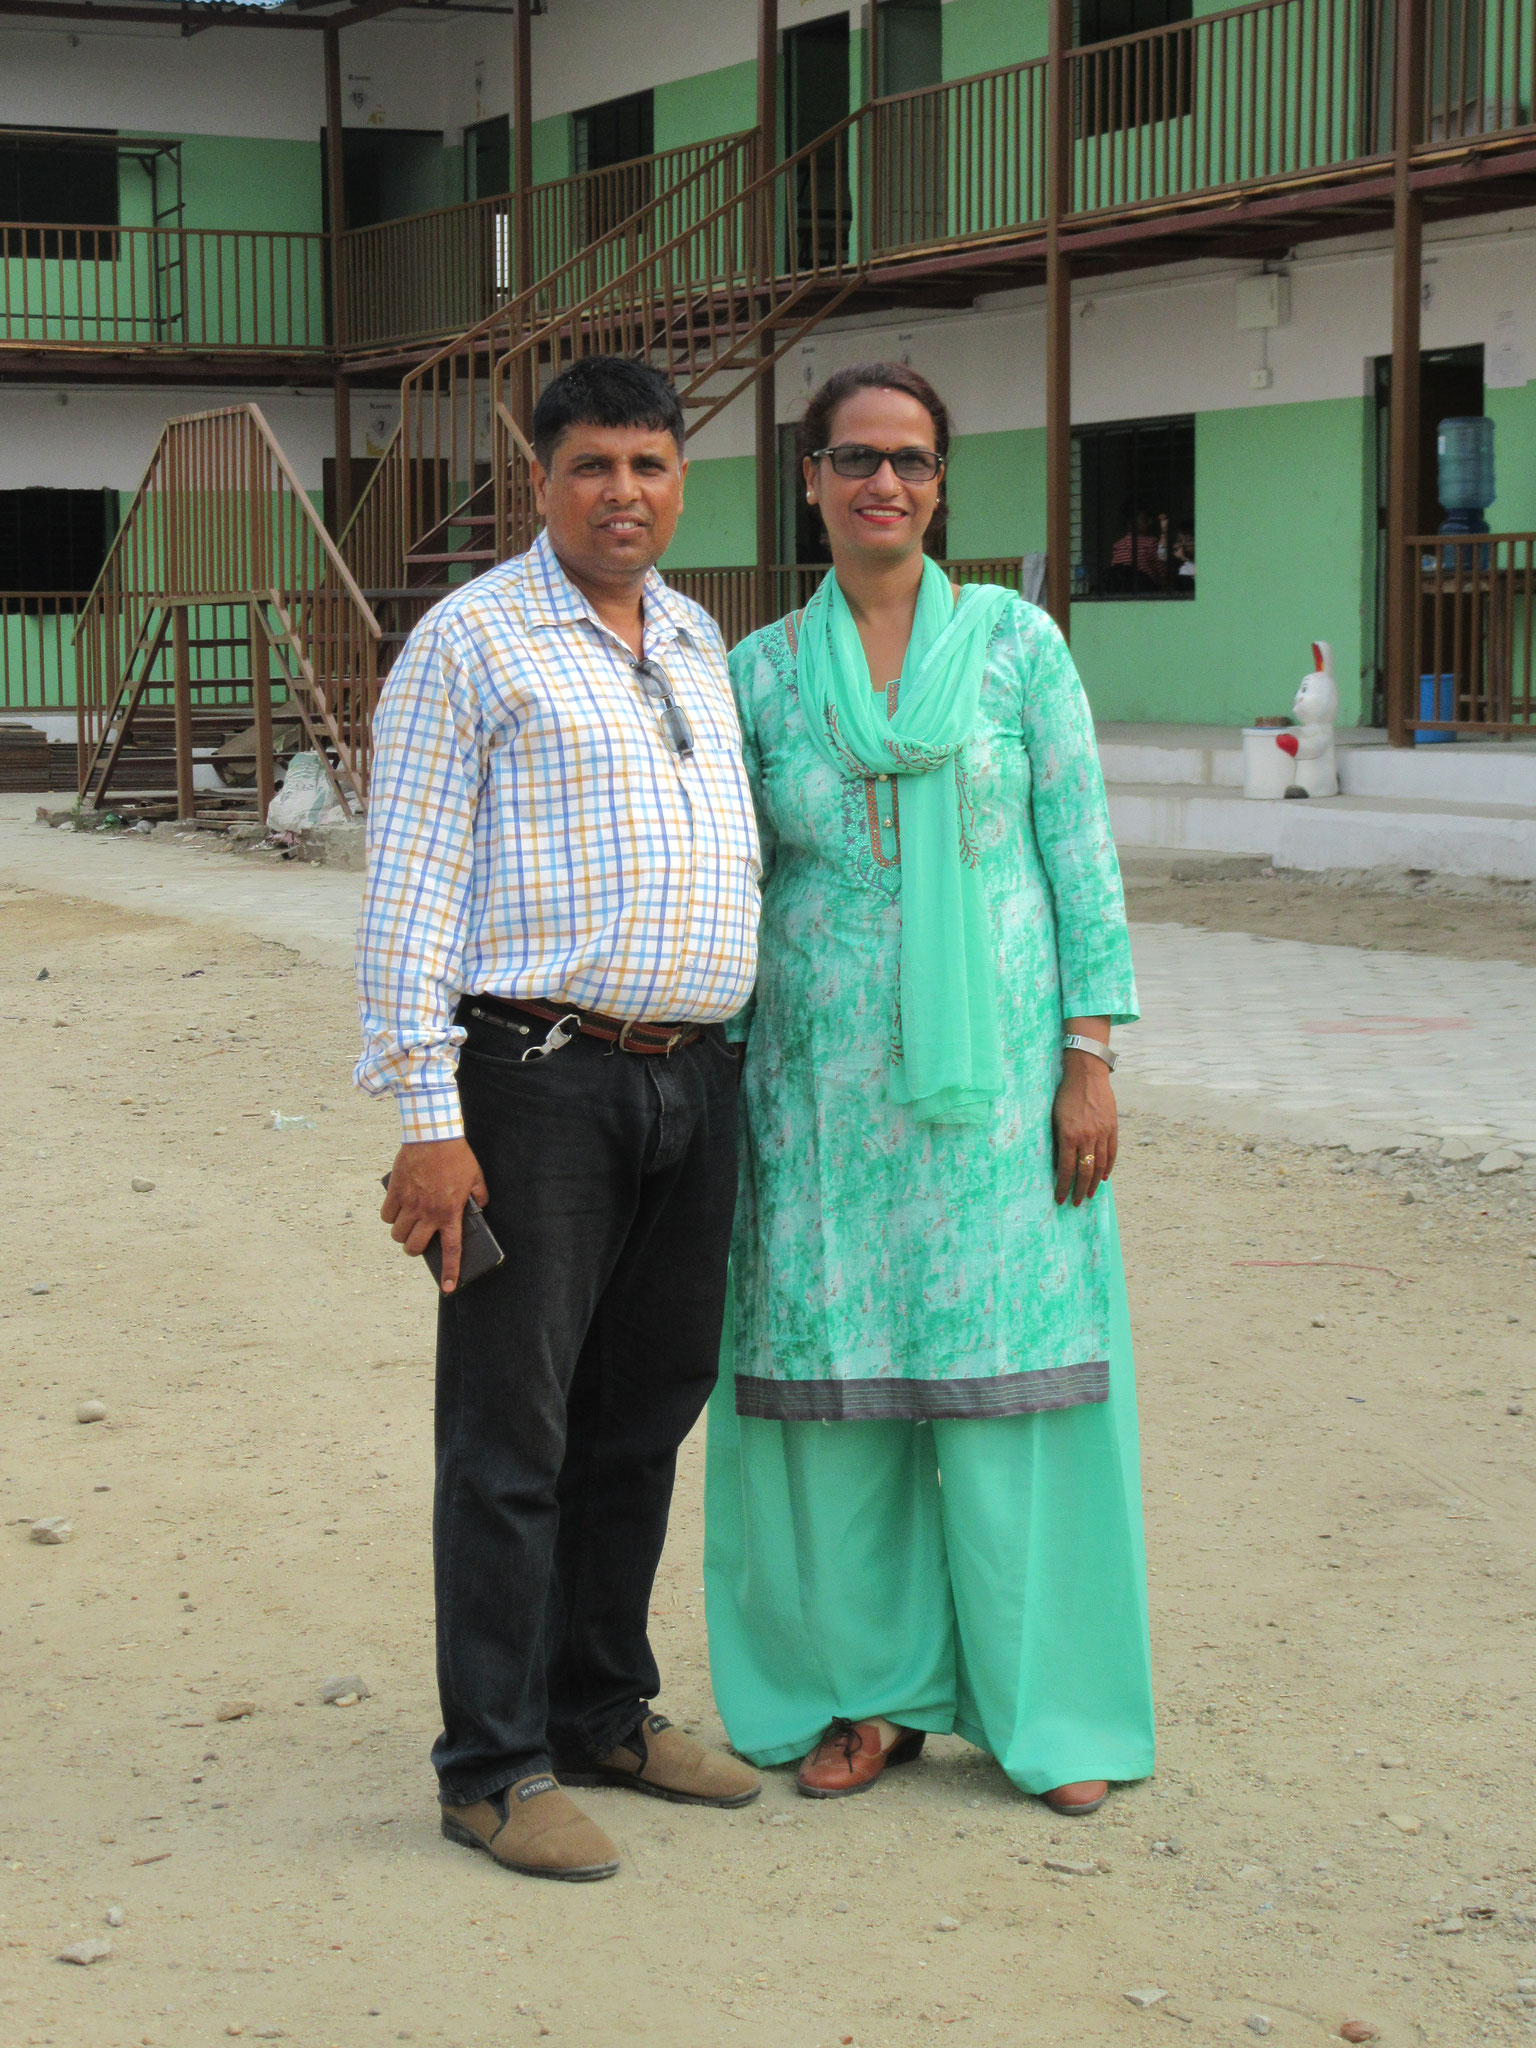 Owners of the school